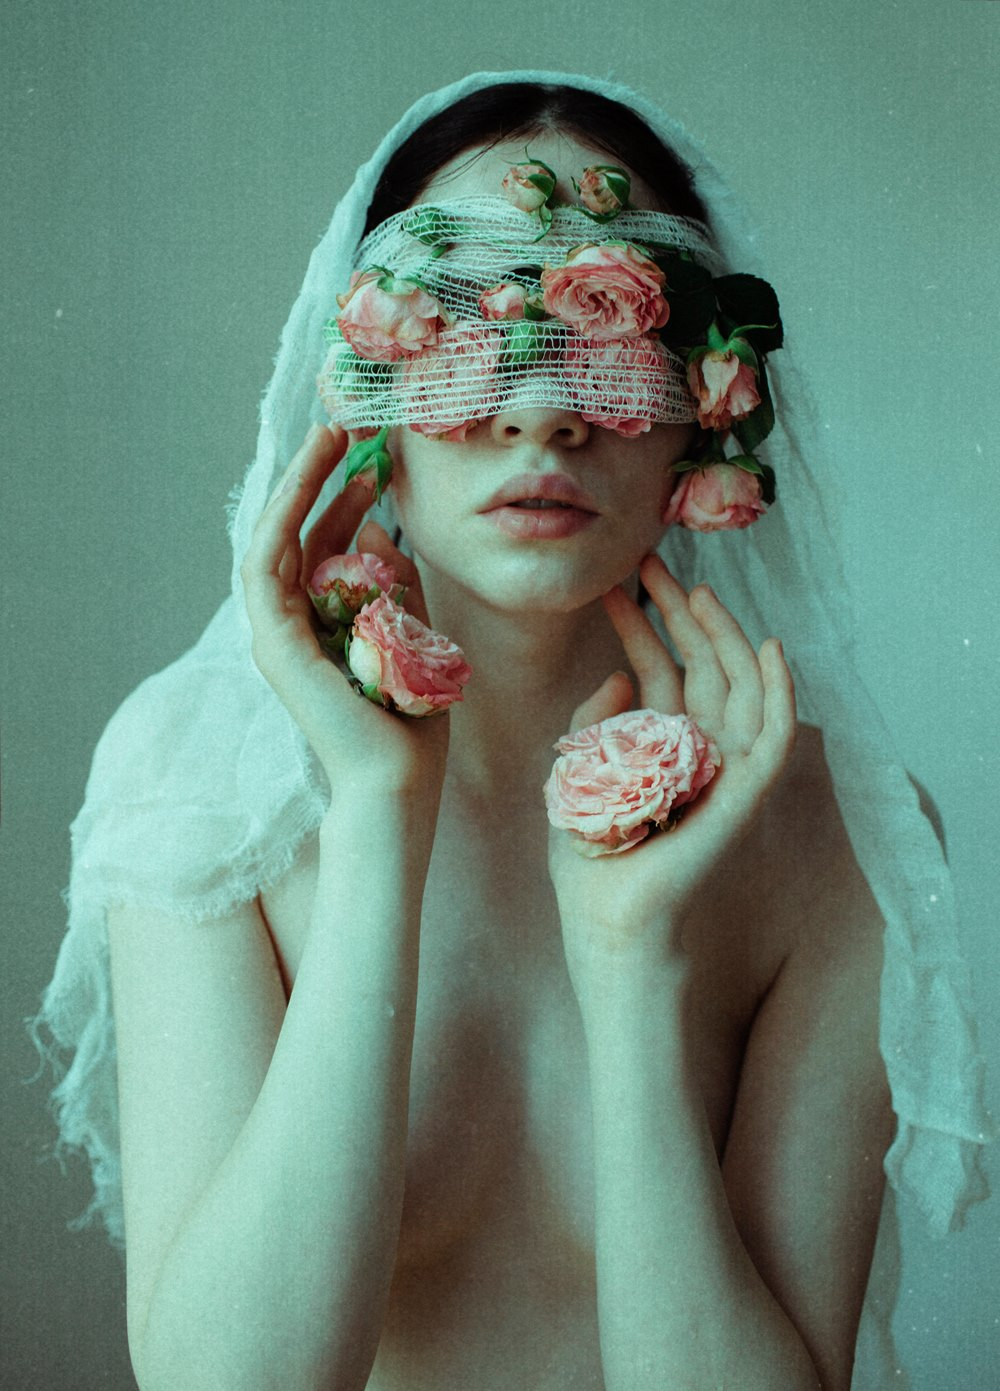 Laura Makabresku – Mystic photography – The Suffering